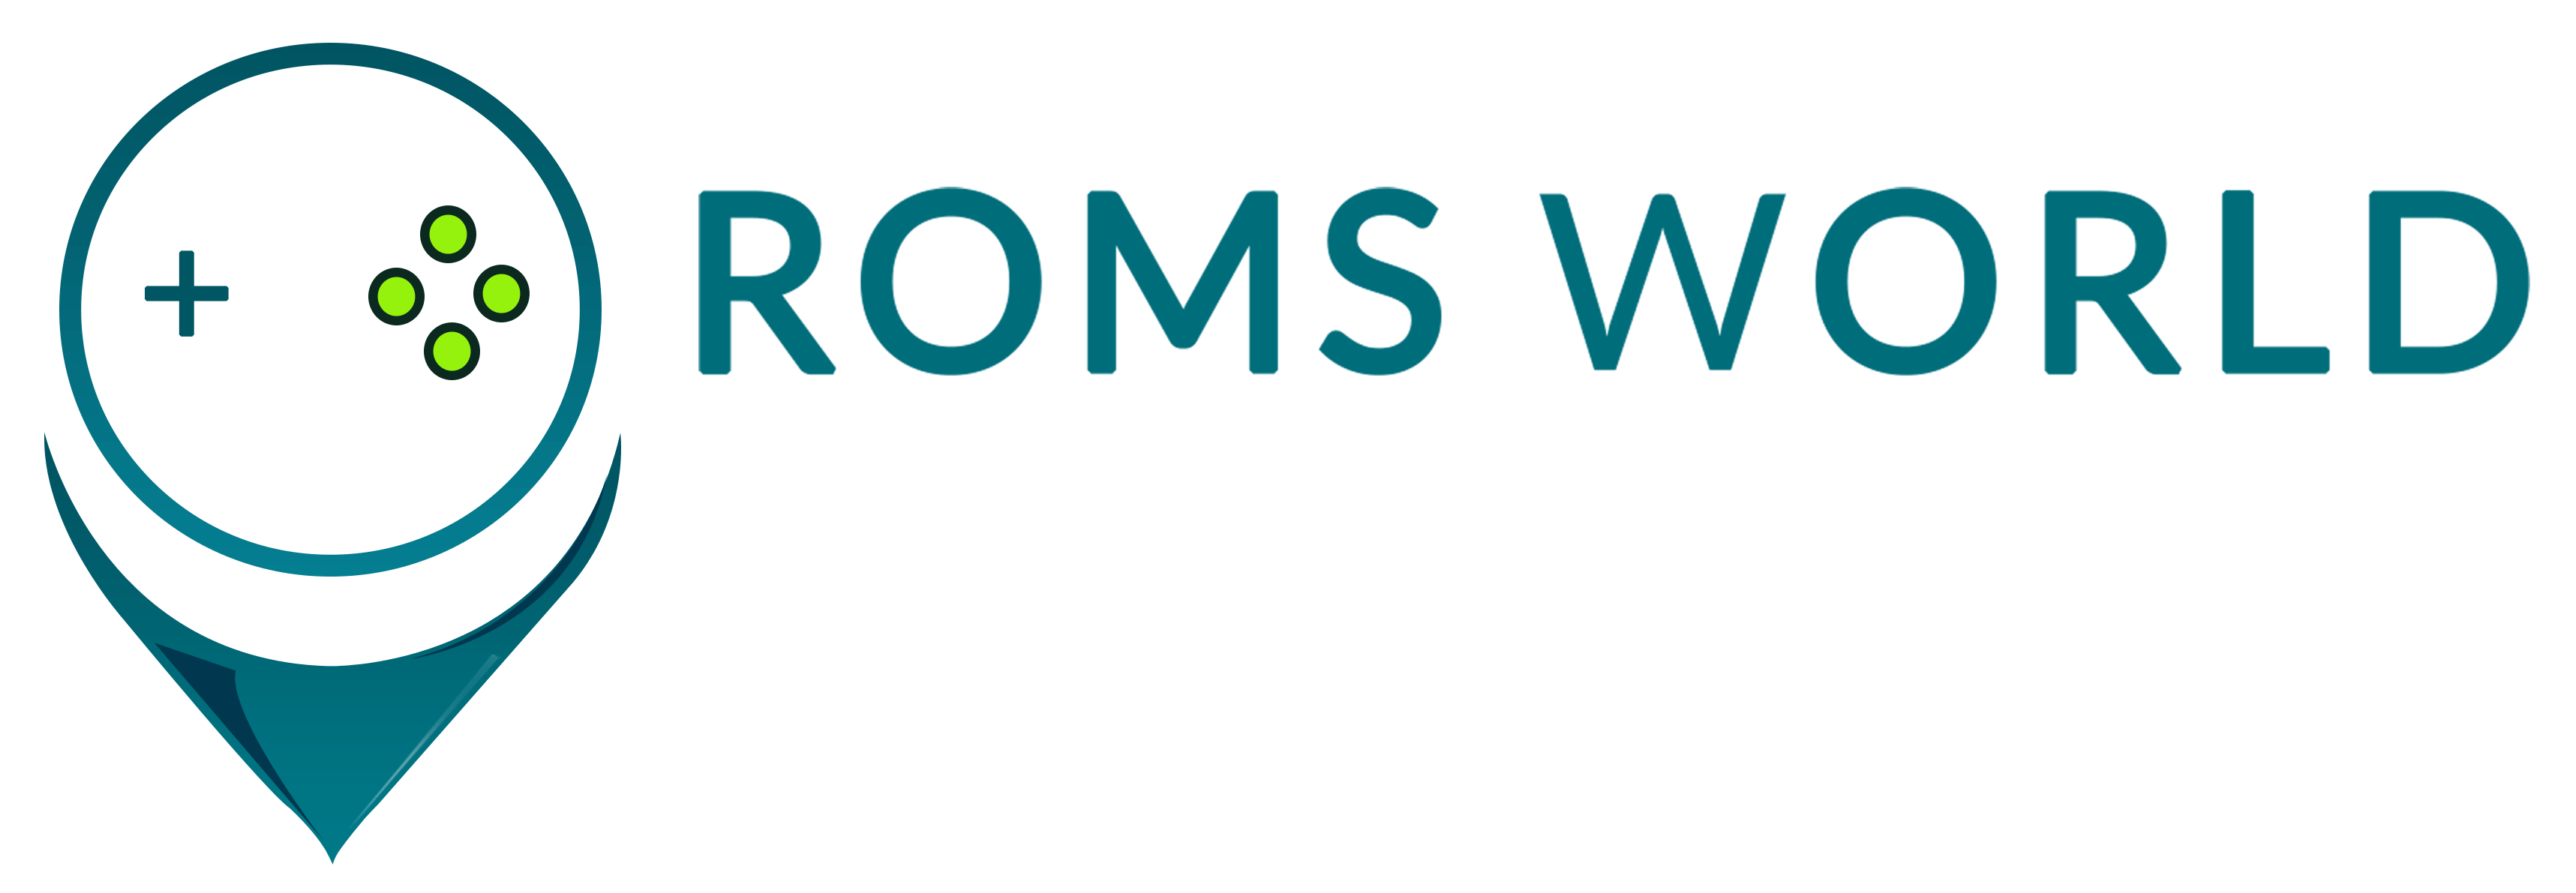 Roms World: Get Free ROMs for NDS, GBA, Playstaion & More